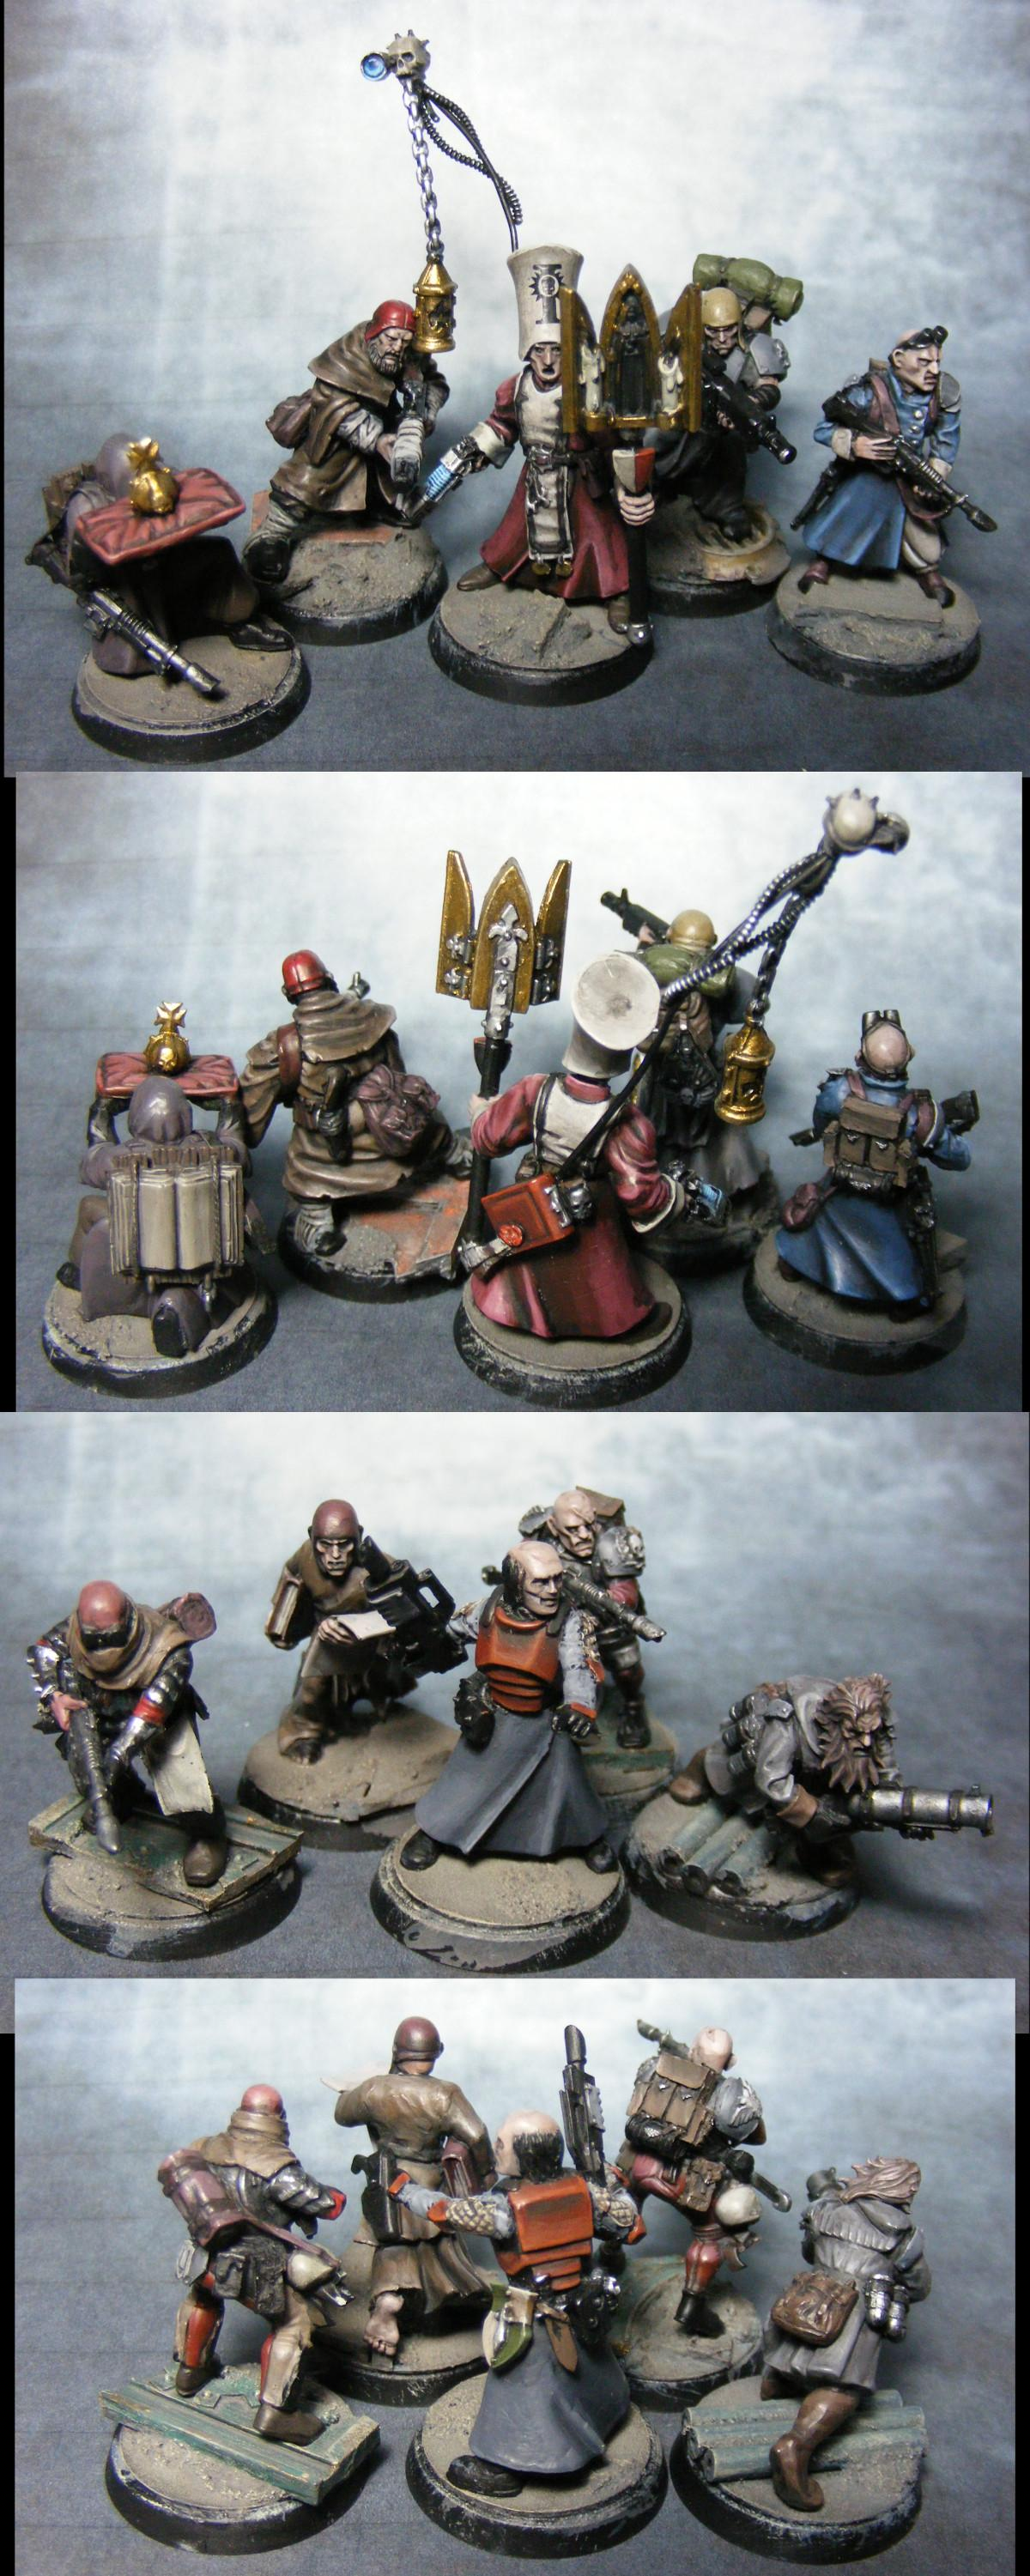 Conversion, Empire, Henchmen, Imperial Guard, Inquisition, Warhammer 40,000